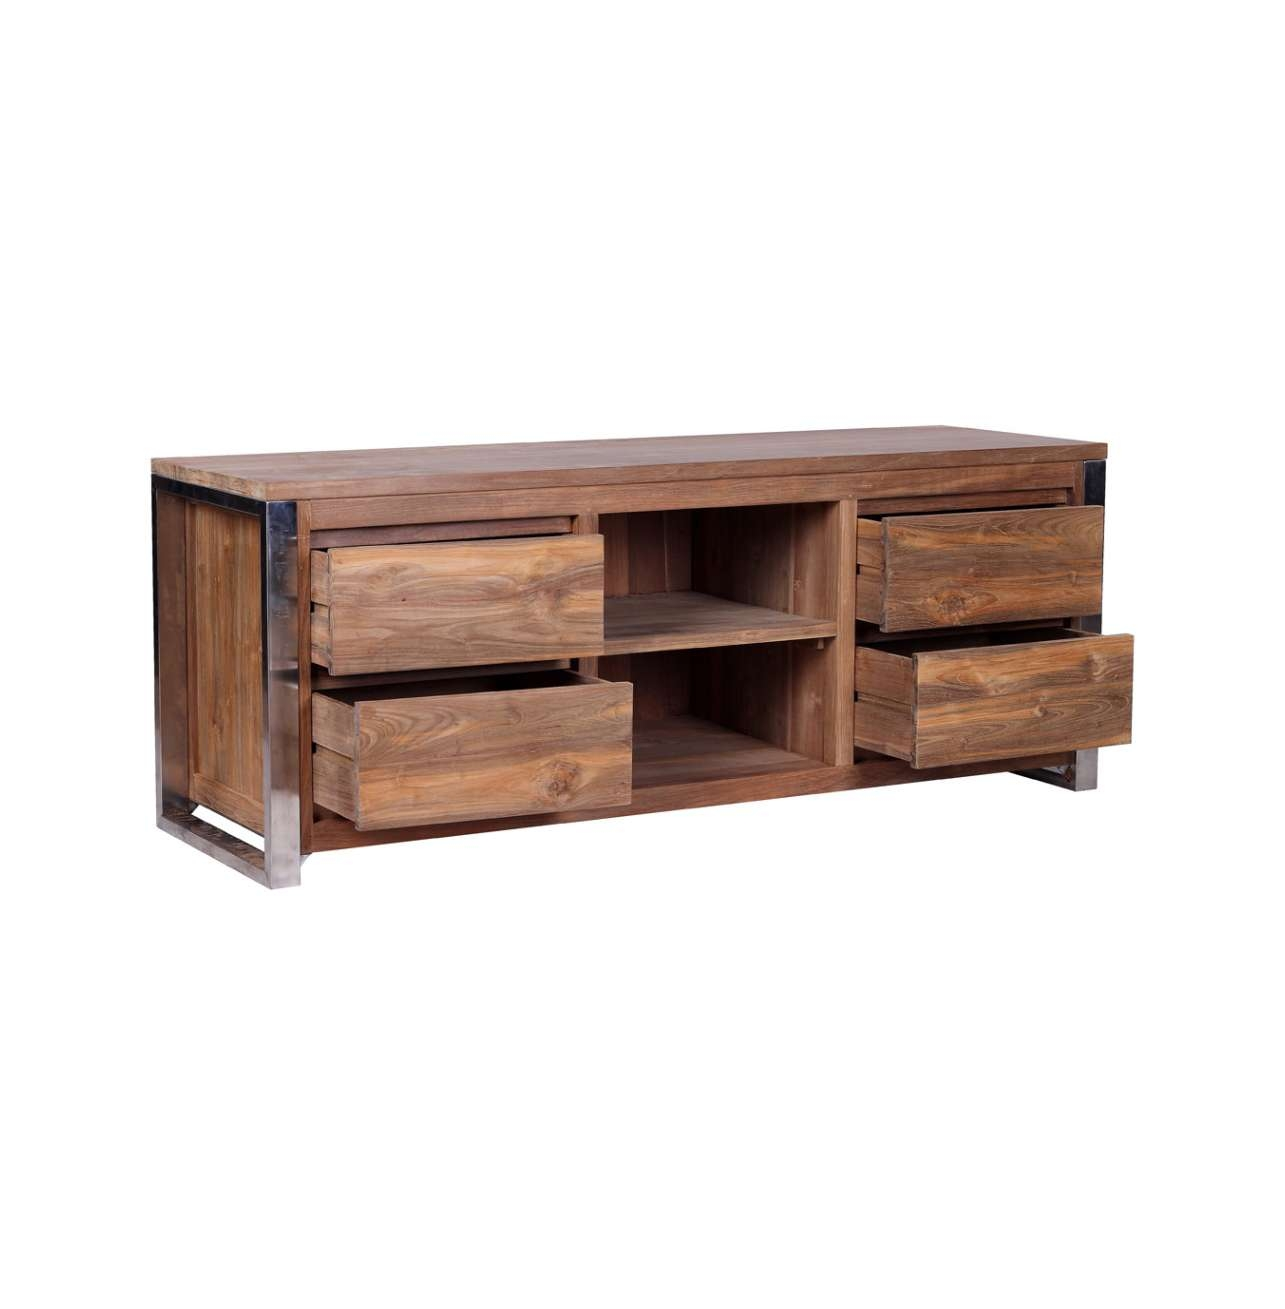 Rarem Reclaimed Wood Tv Stand – Reclaimed Teak And Stainless Steel Pertaining To Recycled Wood Tv Stands (View 9 of 15)